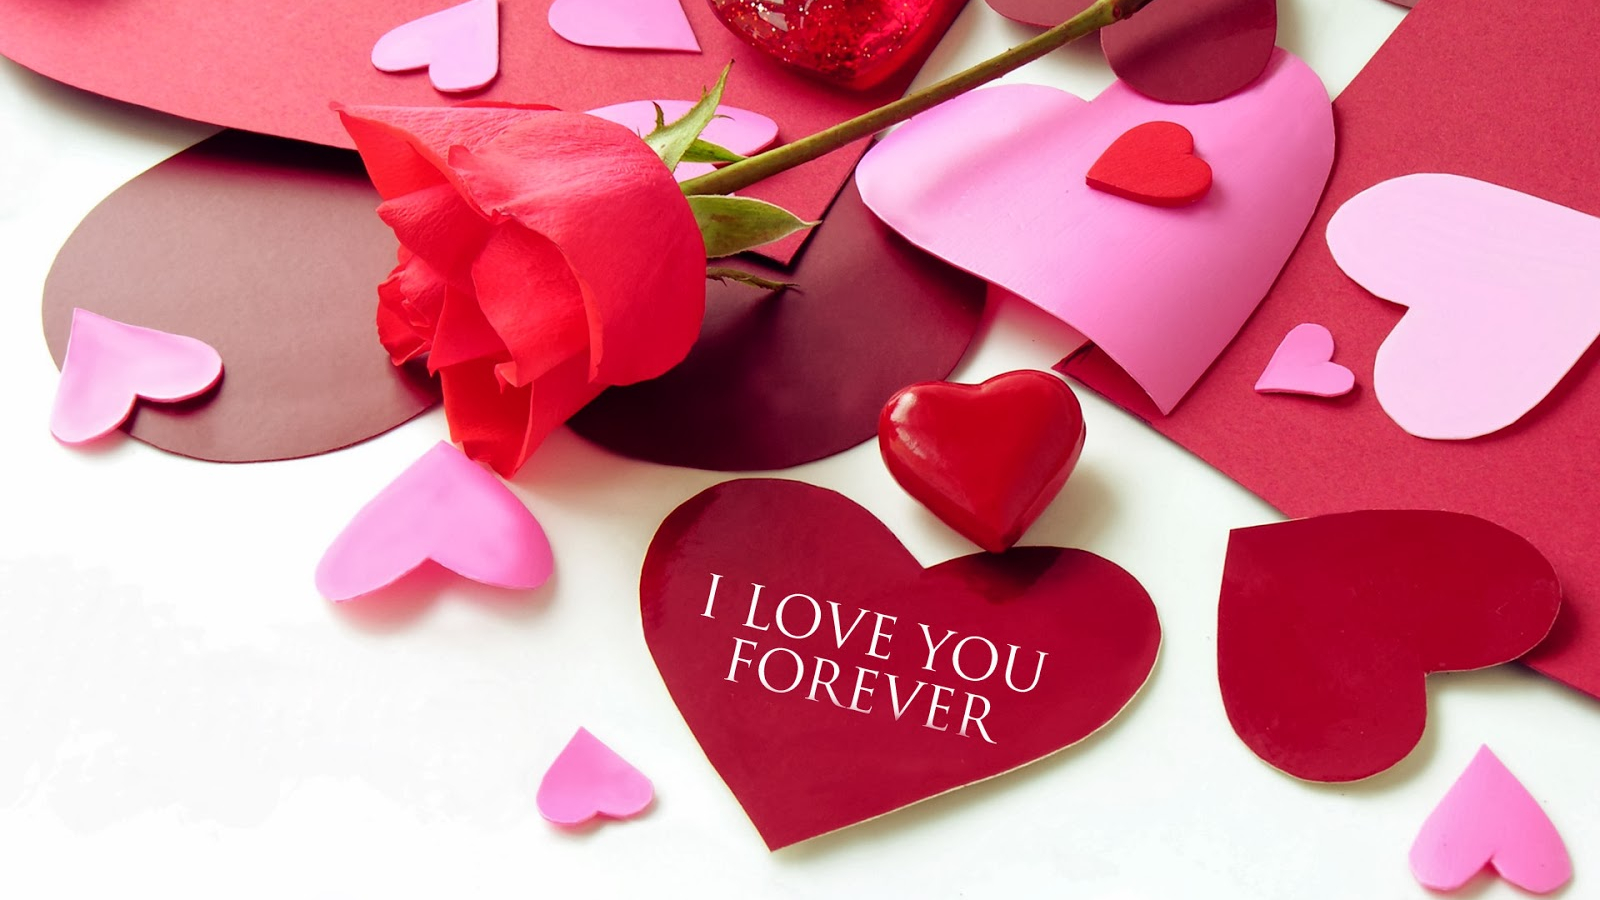 Free Download I Love You Text Pictures For Facebook Hd Images Download 1600x1000 For Your Desktop Mobile Tablet Explore 19 I Love U Wallpapers For Facebook I Love U